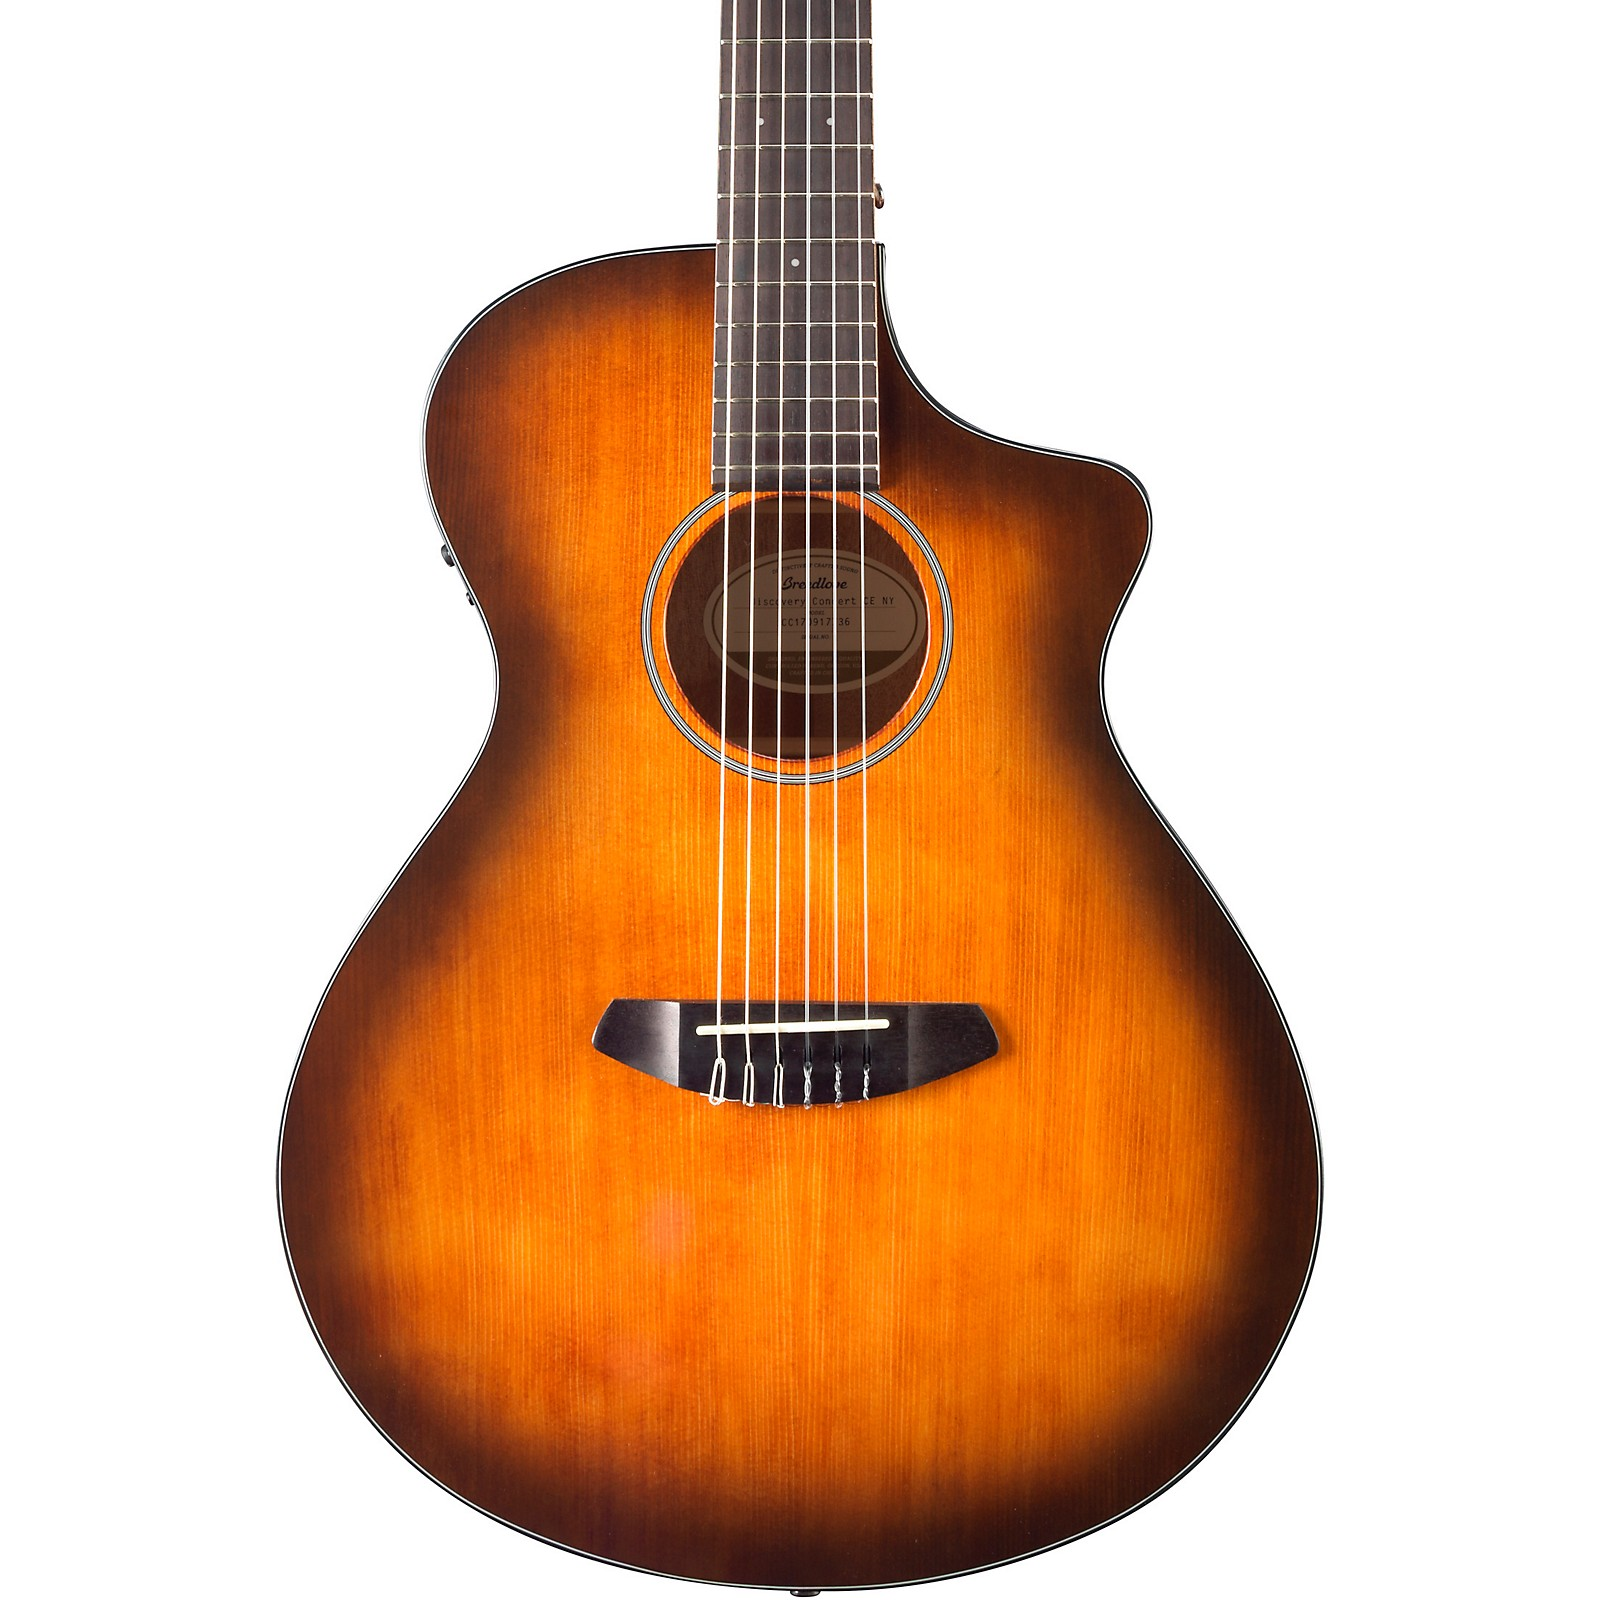 Breedlove Discovery Concert Nylon Cutaway CE Mahogany Acoustic-Electric Guitar With Engelmann Spruce Top